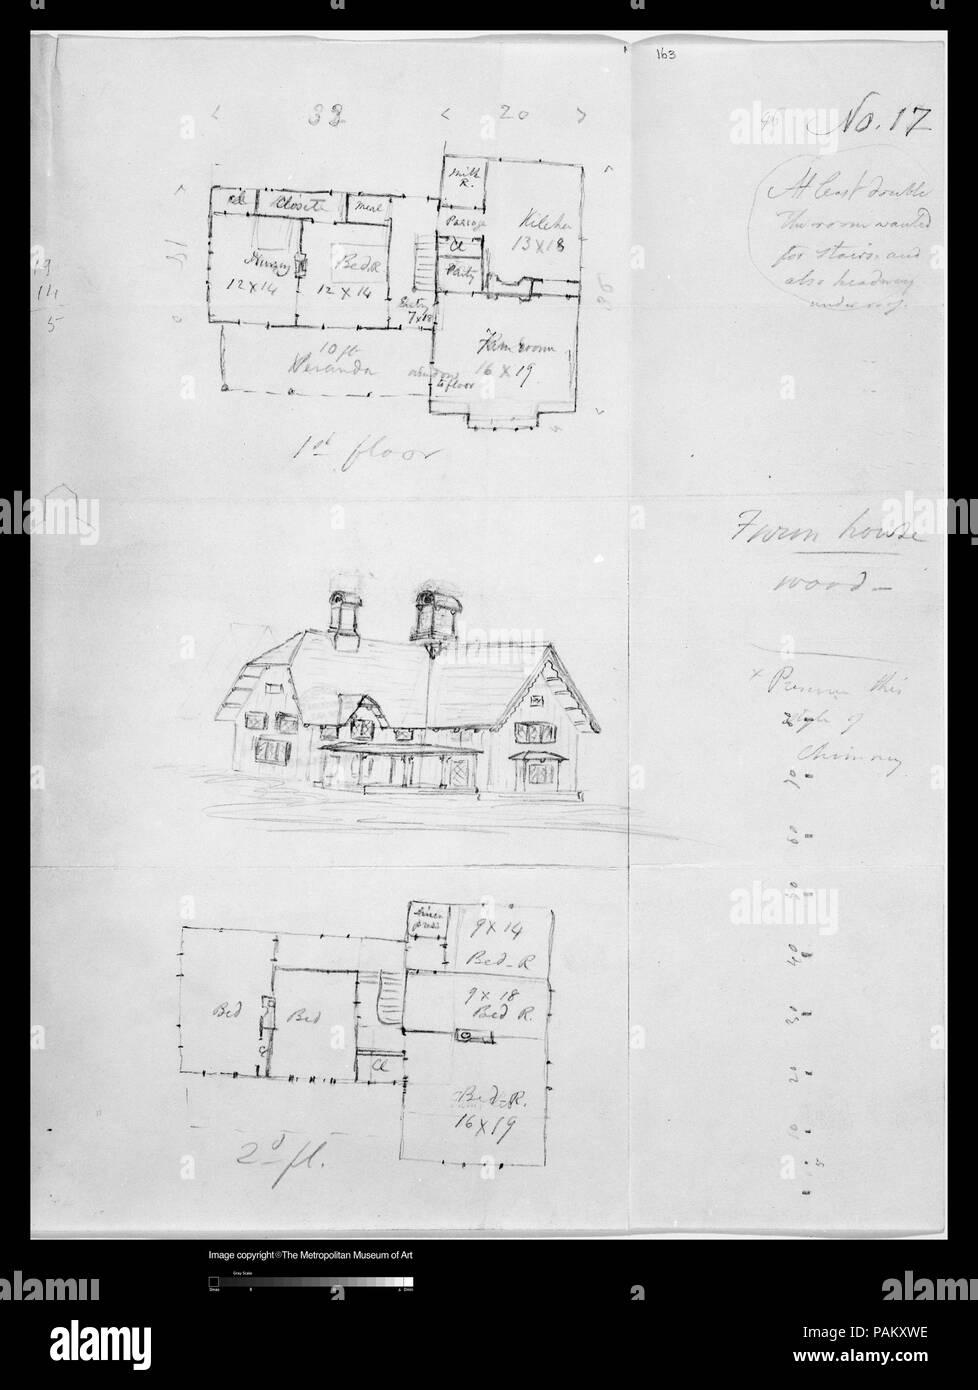 Design for Bracketed American Farm House, Design XVII from The Architecture of Country Houses. Artist: Alexander Jackson Davis (American, New York 1803-1892 West Orange, New Jersey). Dimensions: sheet: 10 1/16 x 7 15/16 in. (25.5 x 20.1 cm). Date: ca. 1850. Museum: Metropolitan Museum of Art, New York, USA. - Stock Image